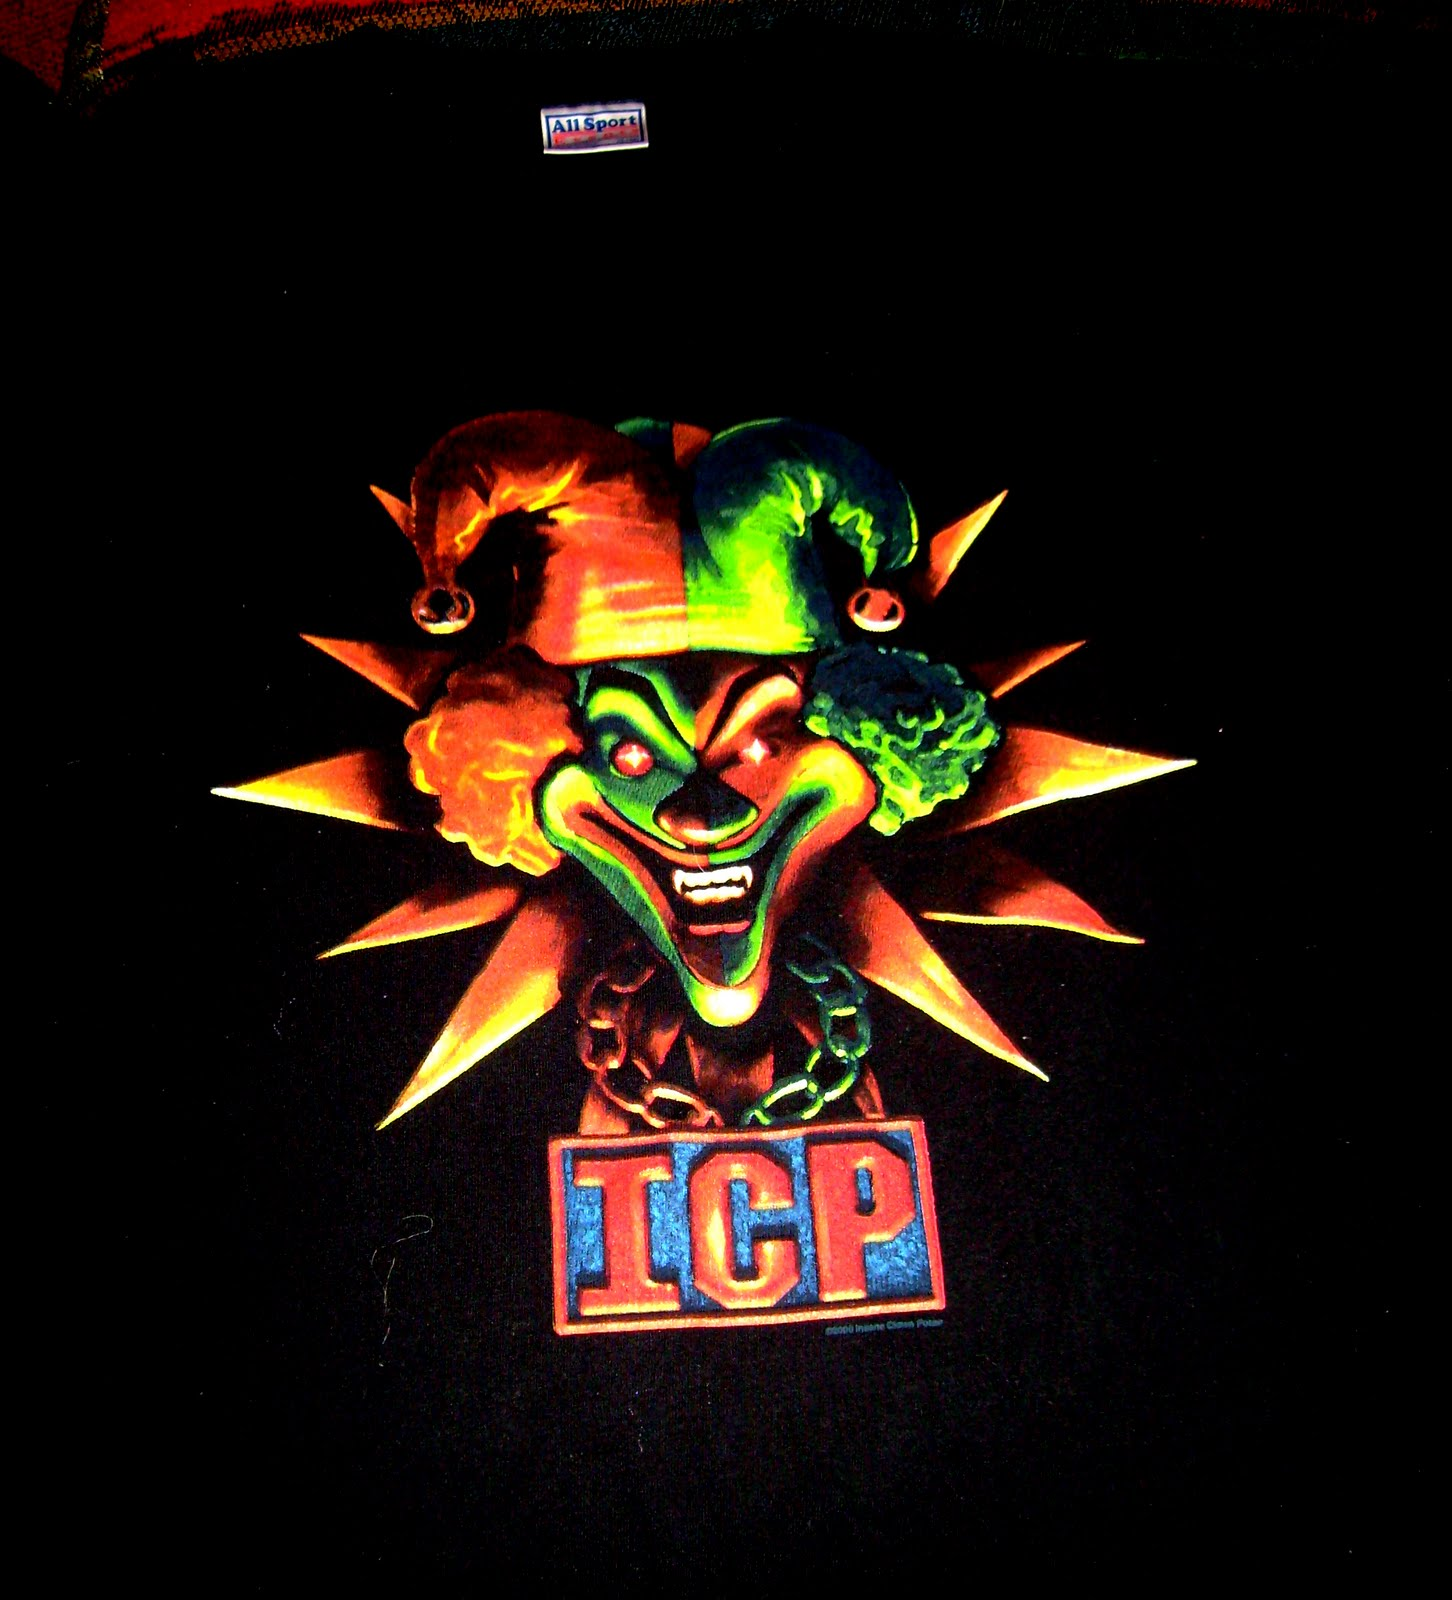 Icp Juggalo Wallpaper For Kids